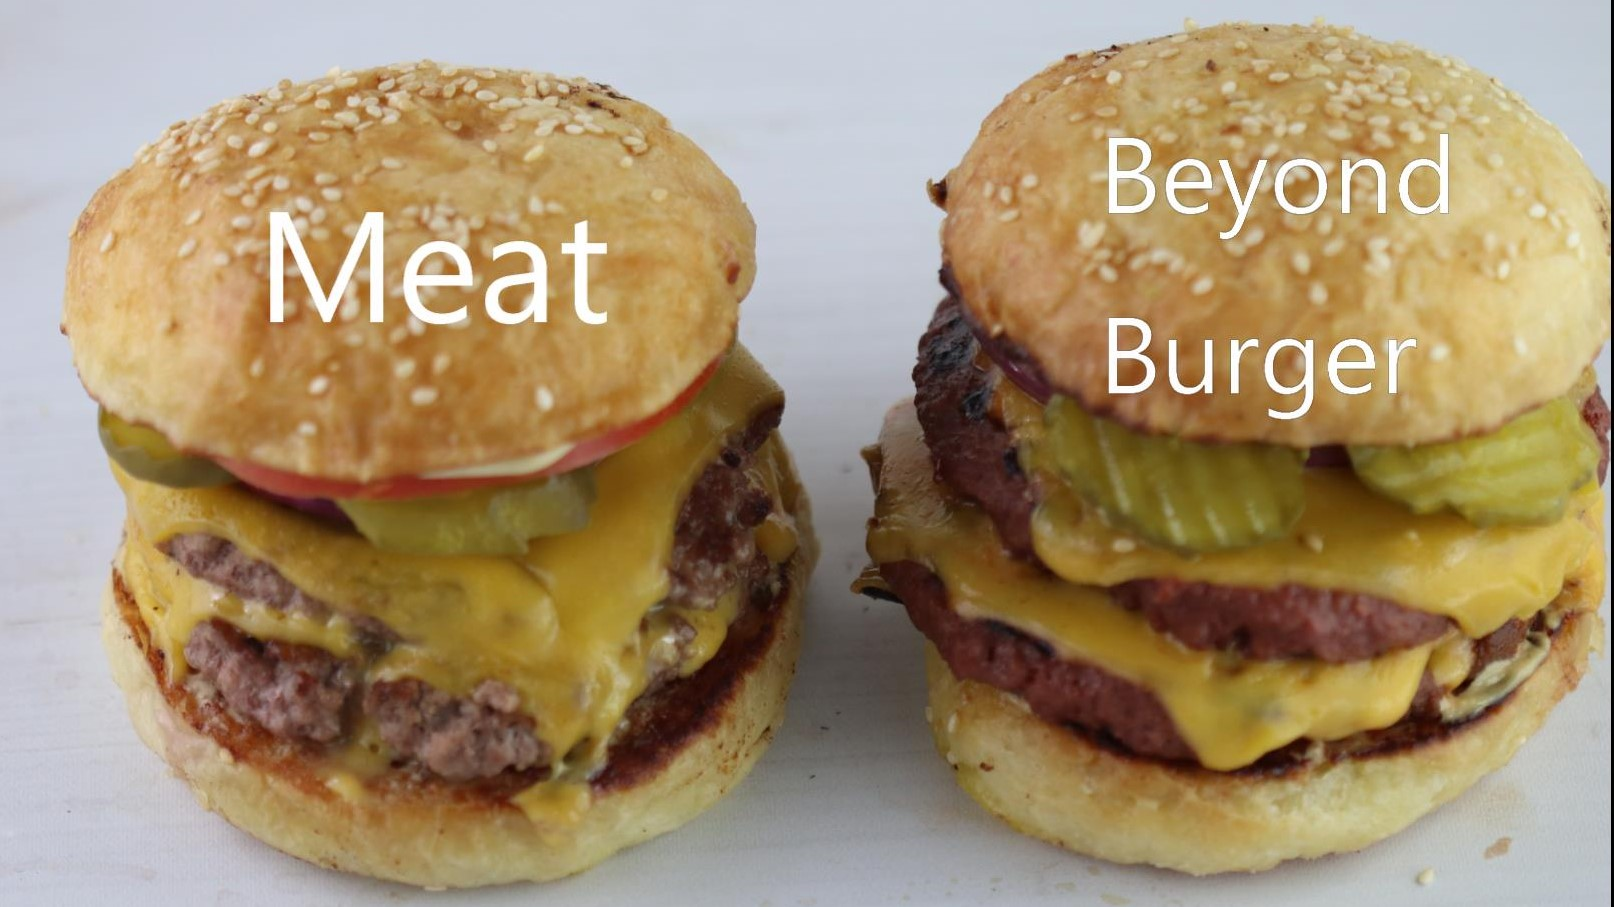 Double Cheeseburger – Meat vs. Beyond recipe